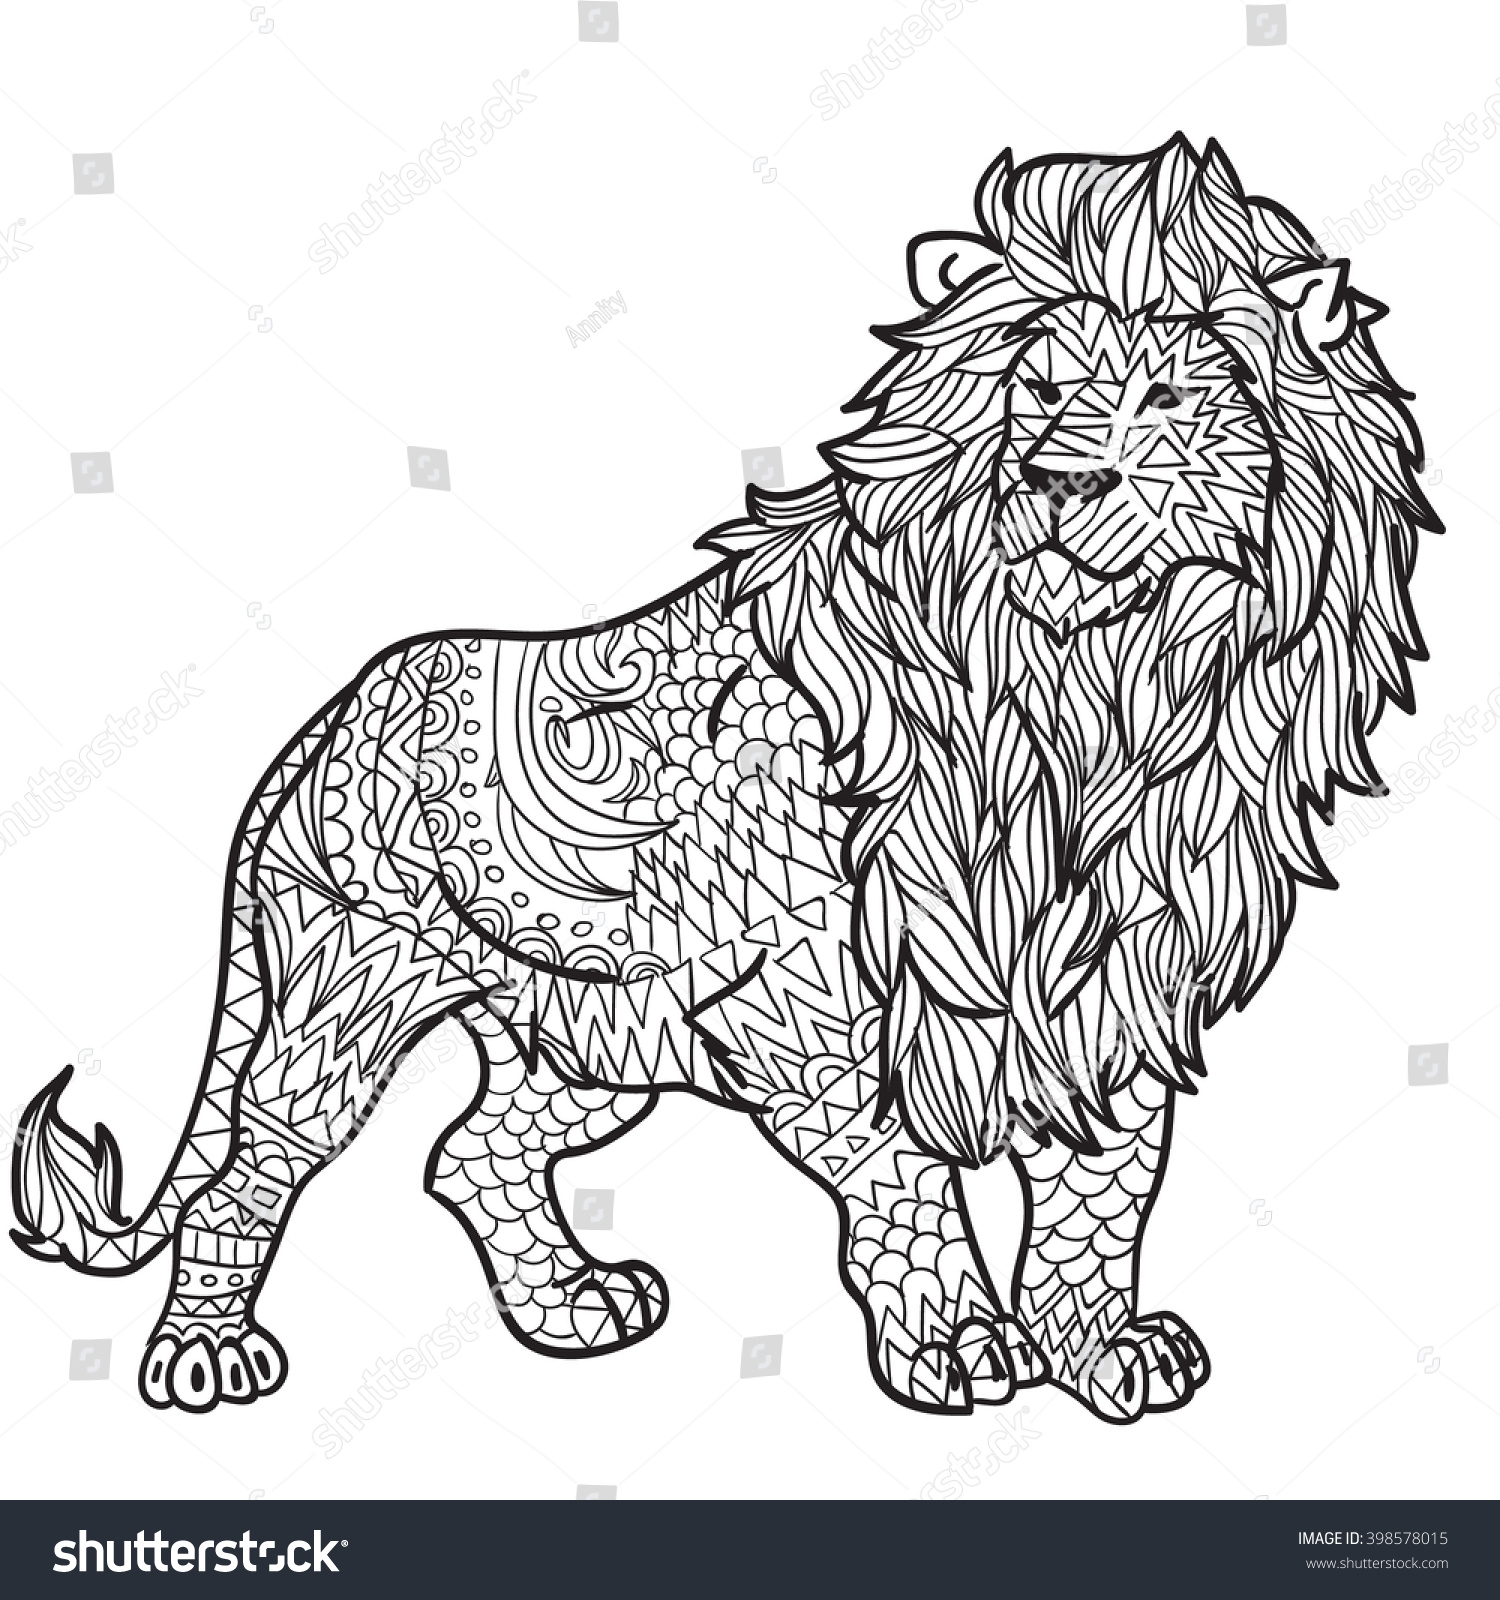 Hand Drawn Coloring Pages With Lion Zentangle